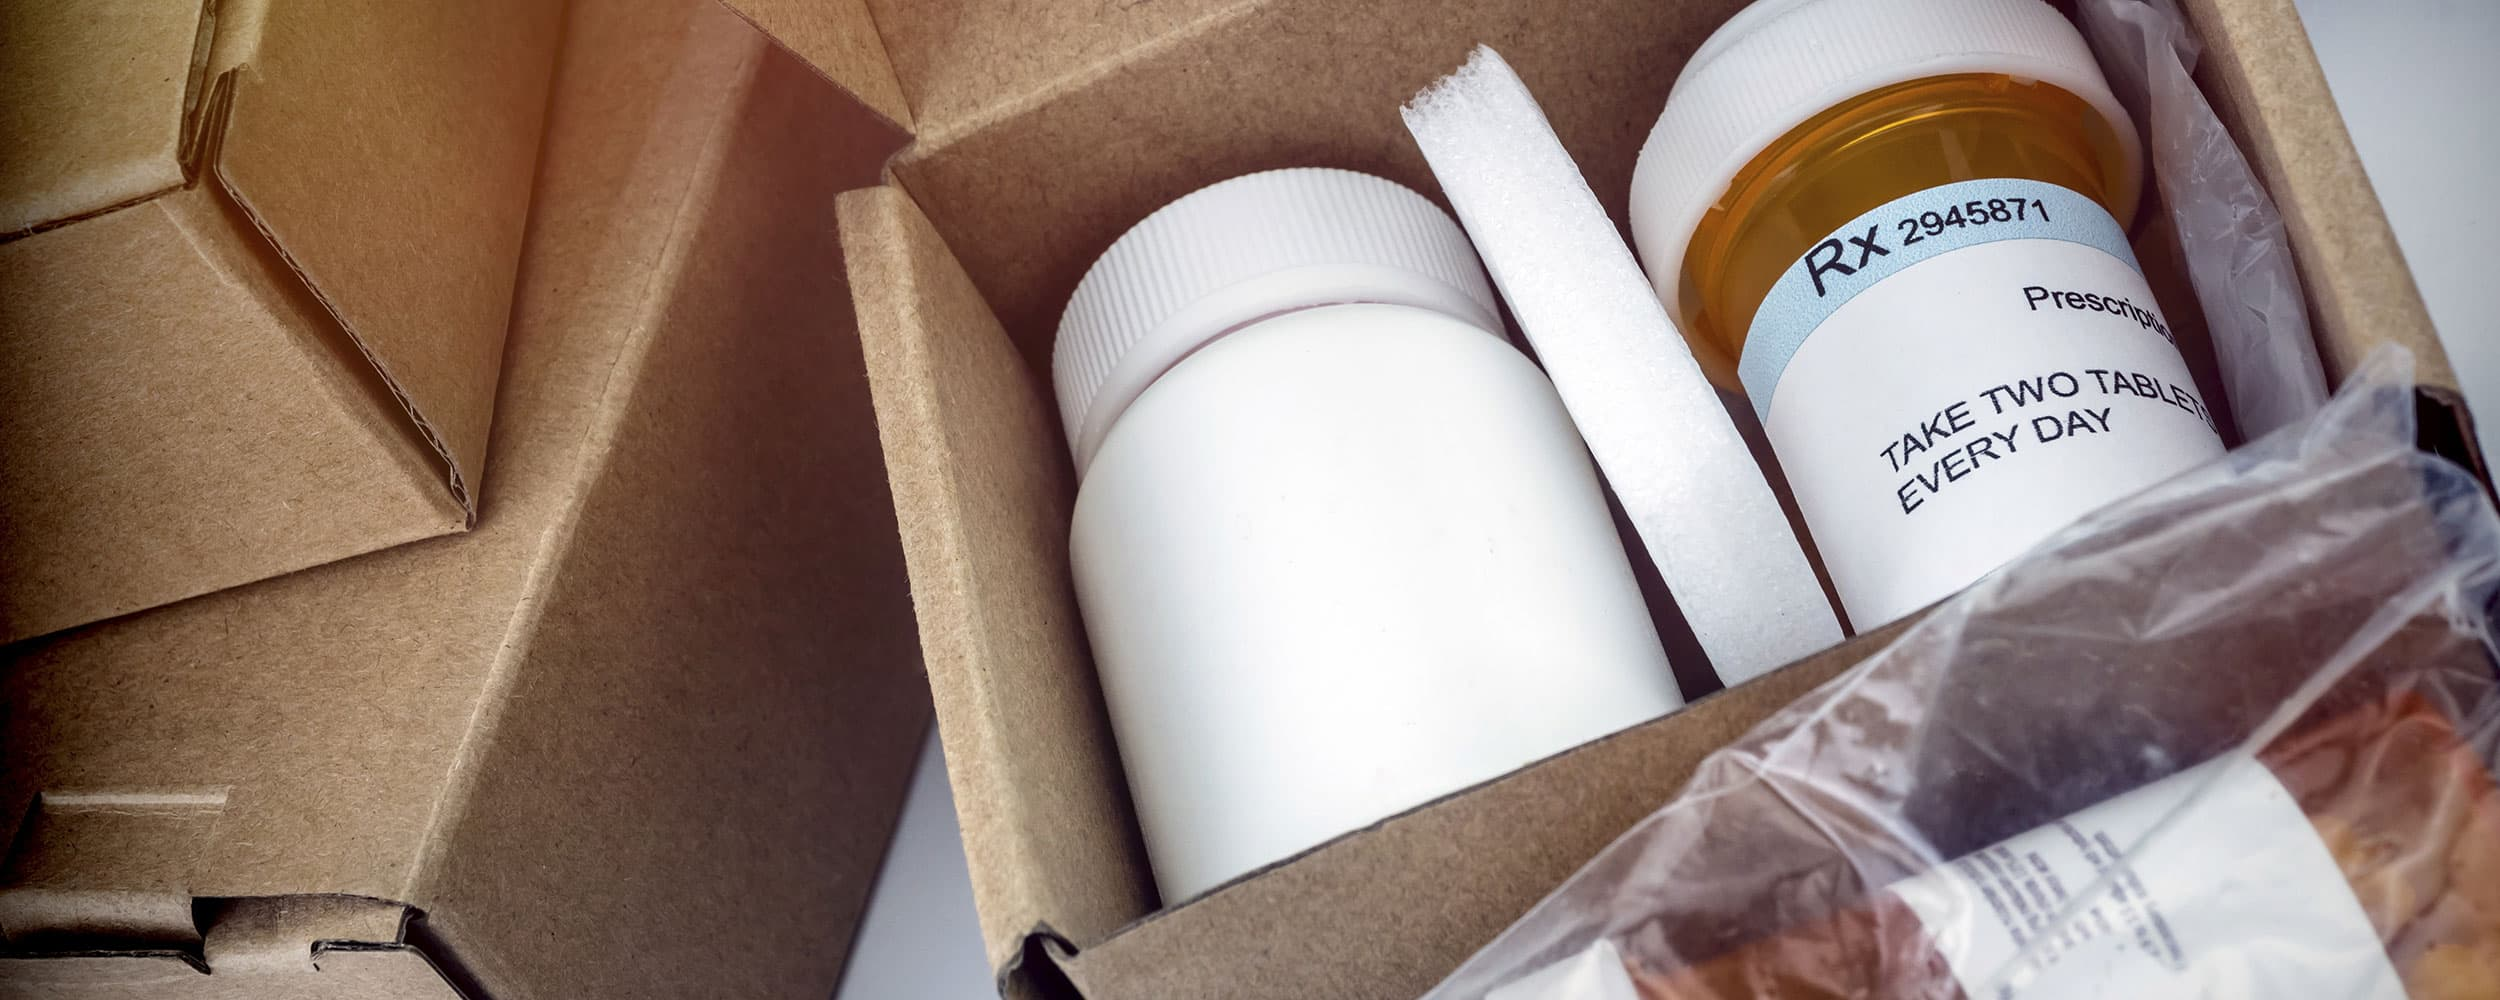 Boxes filled with prescription medicine bottles